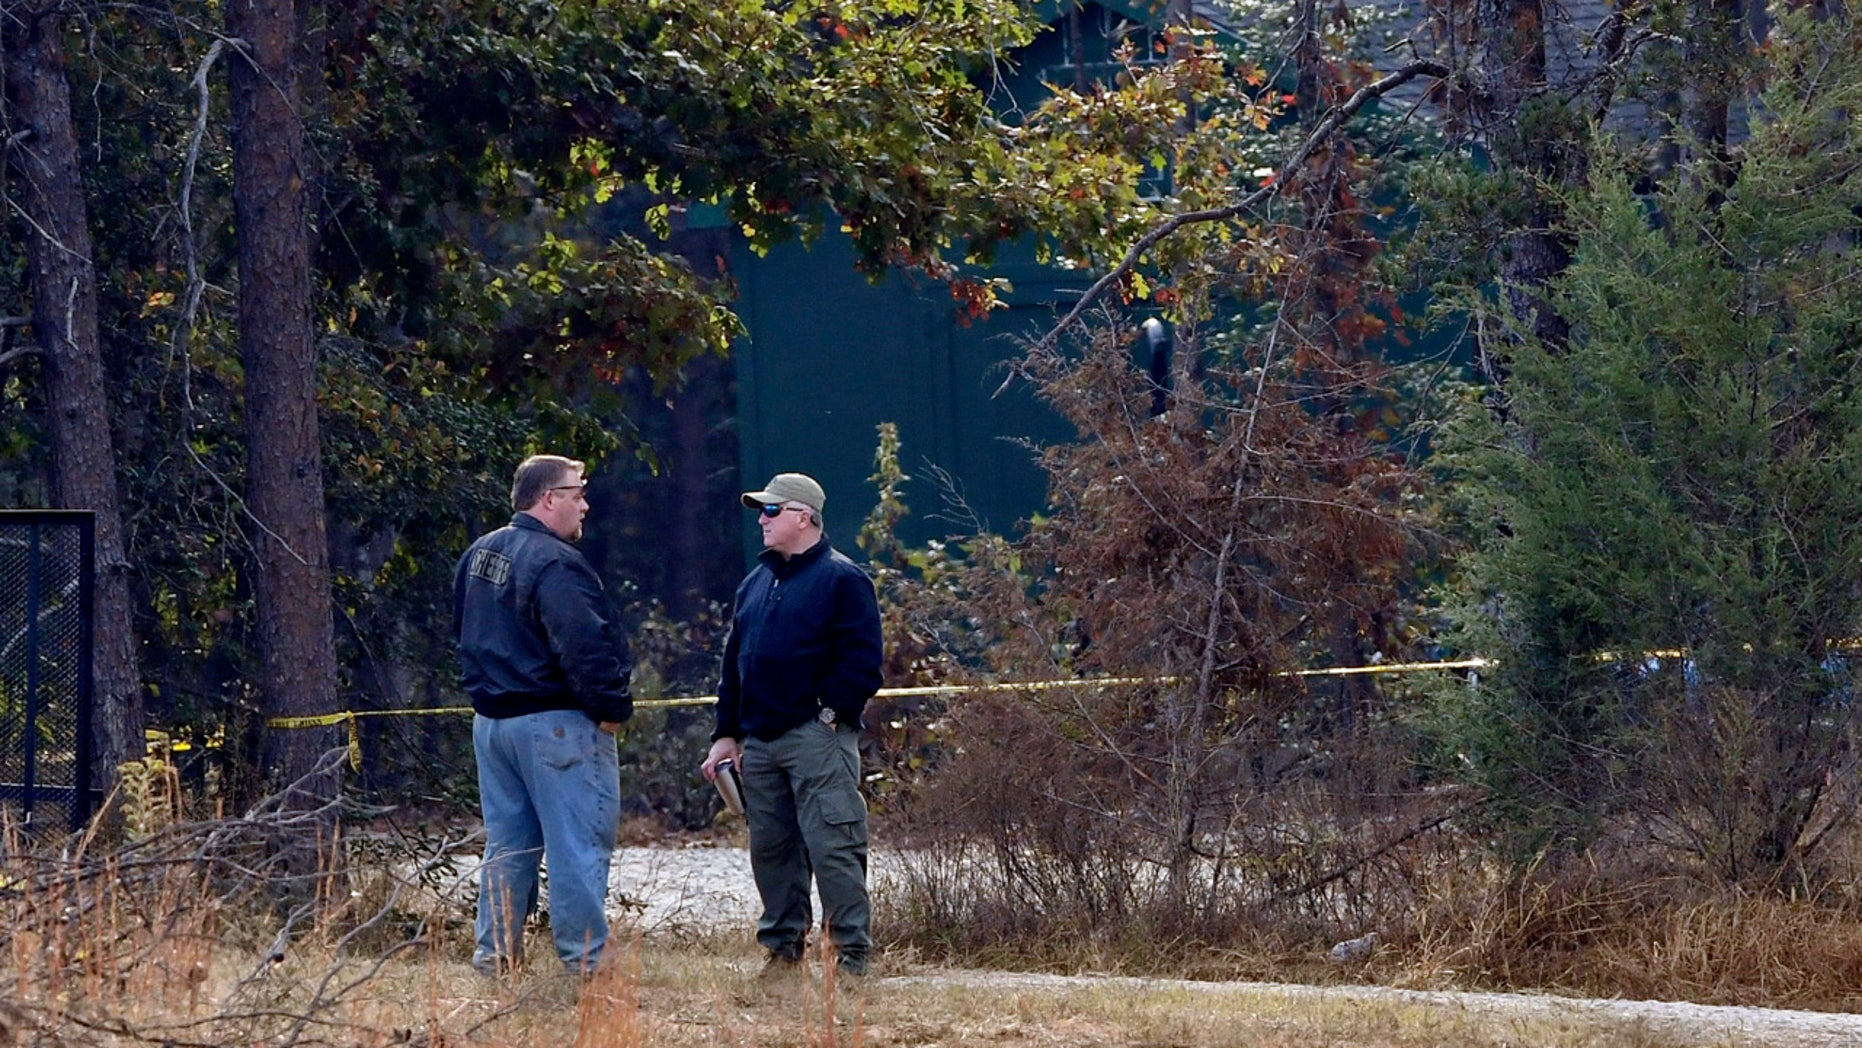 Law enforcement personnel stand near police tape on Todd Kohlhepp's property in Woodruff, S.C. Sunday, Nov. 6, 2016.